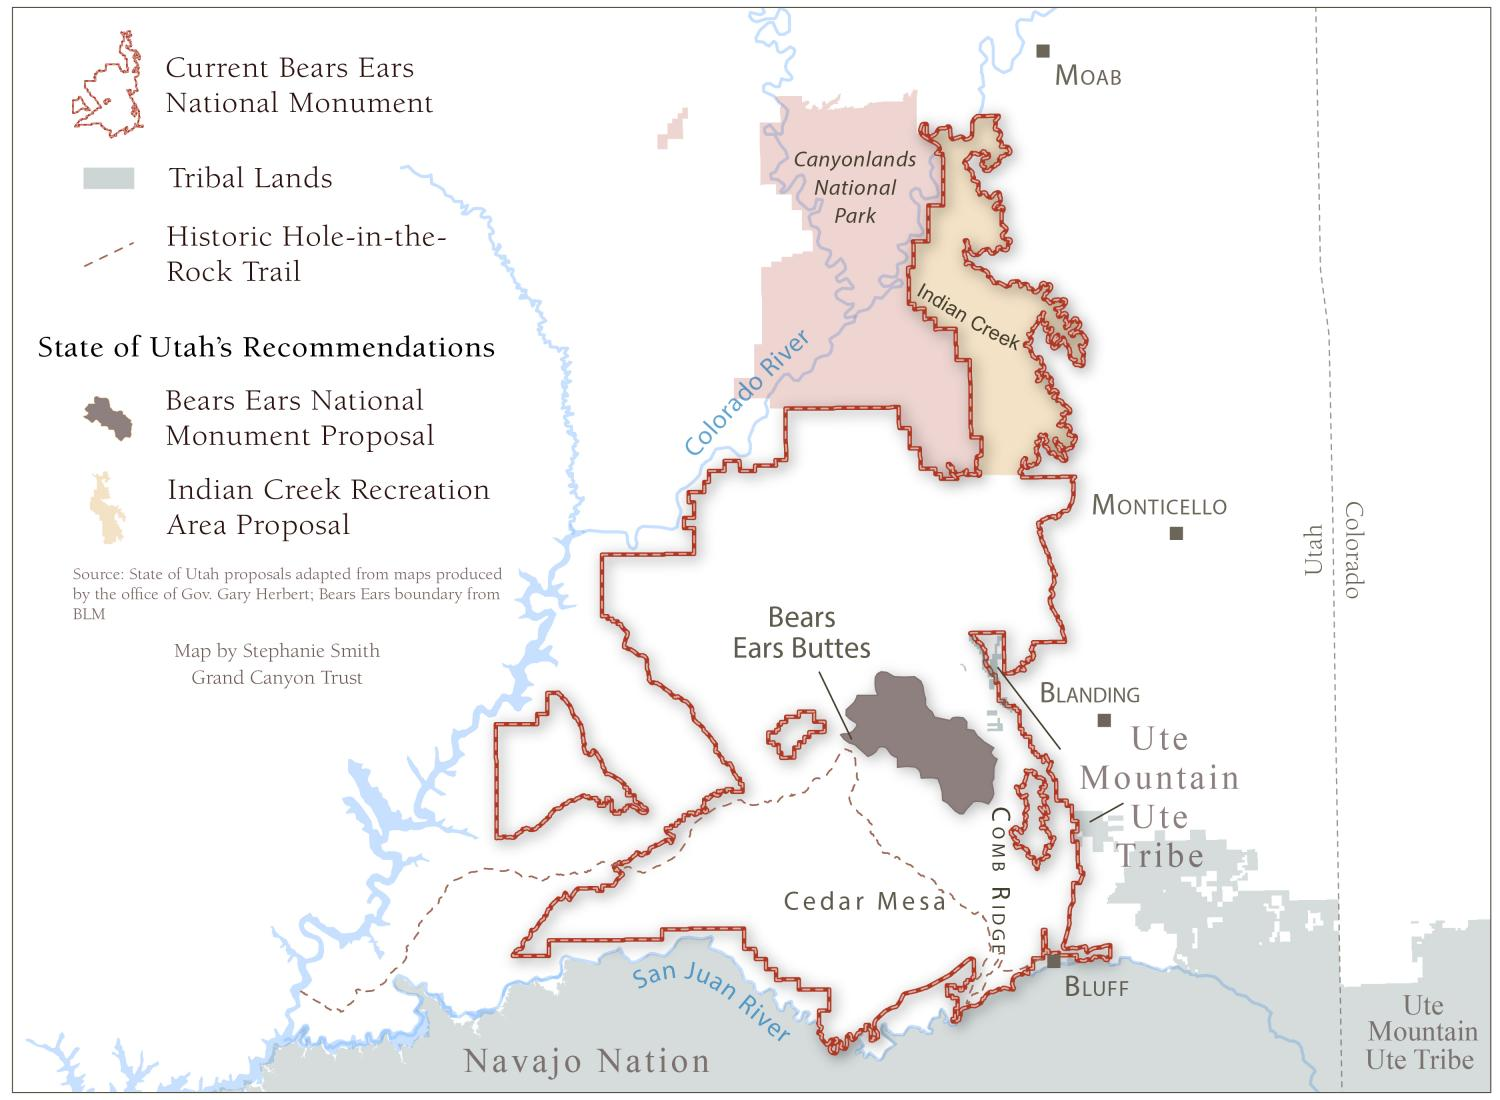 Map of proposed cuts to Bears Ears National Monument